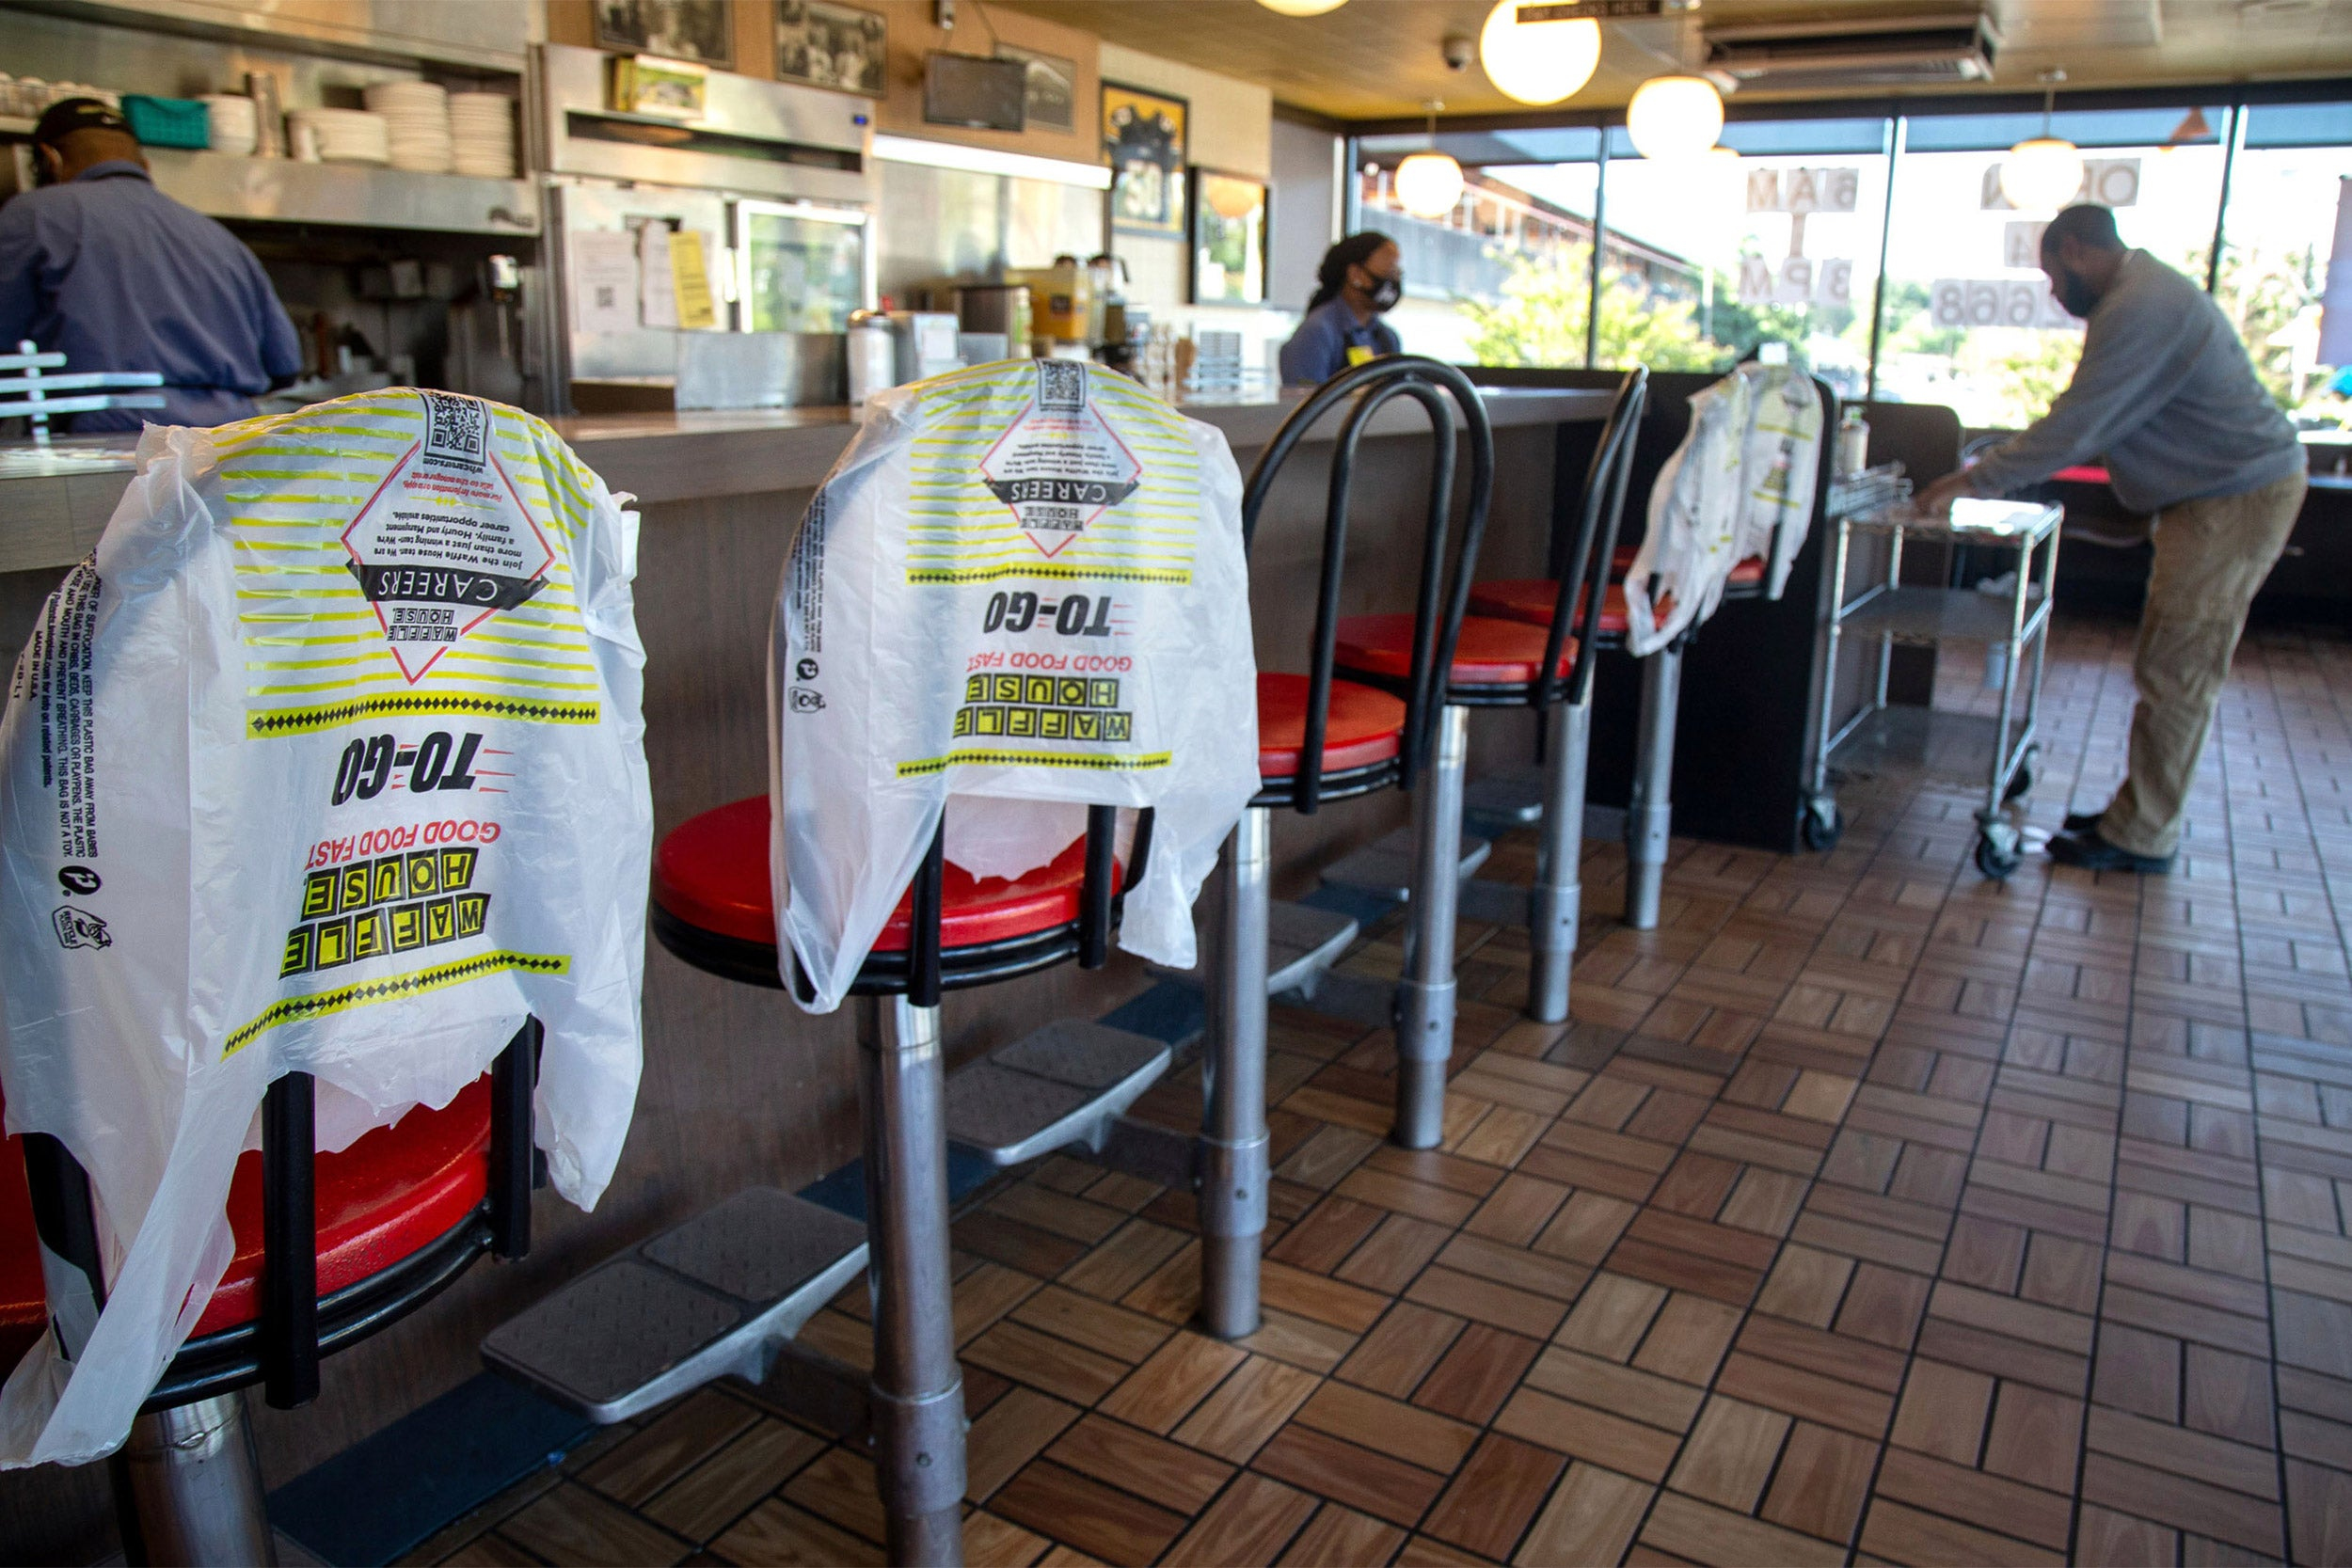 Customer picks up order in Waffle House.